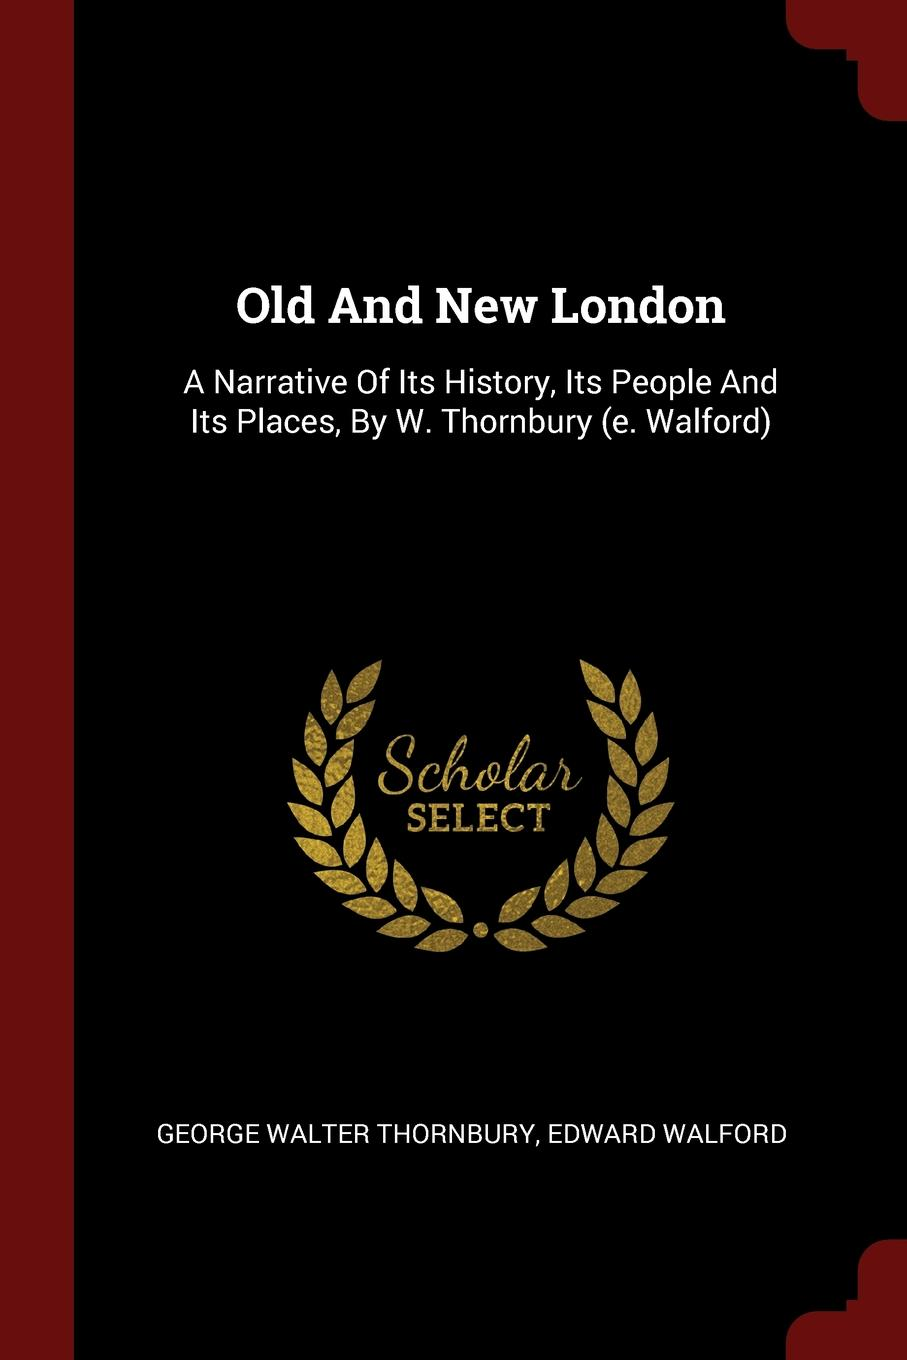 Old And New London. A Narrative Of Its History, Its People And Its Places, By W. Thornbury (e. Walford)